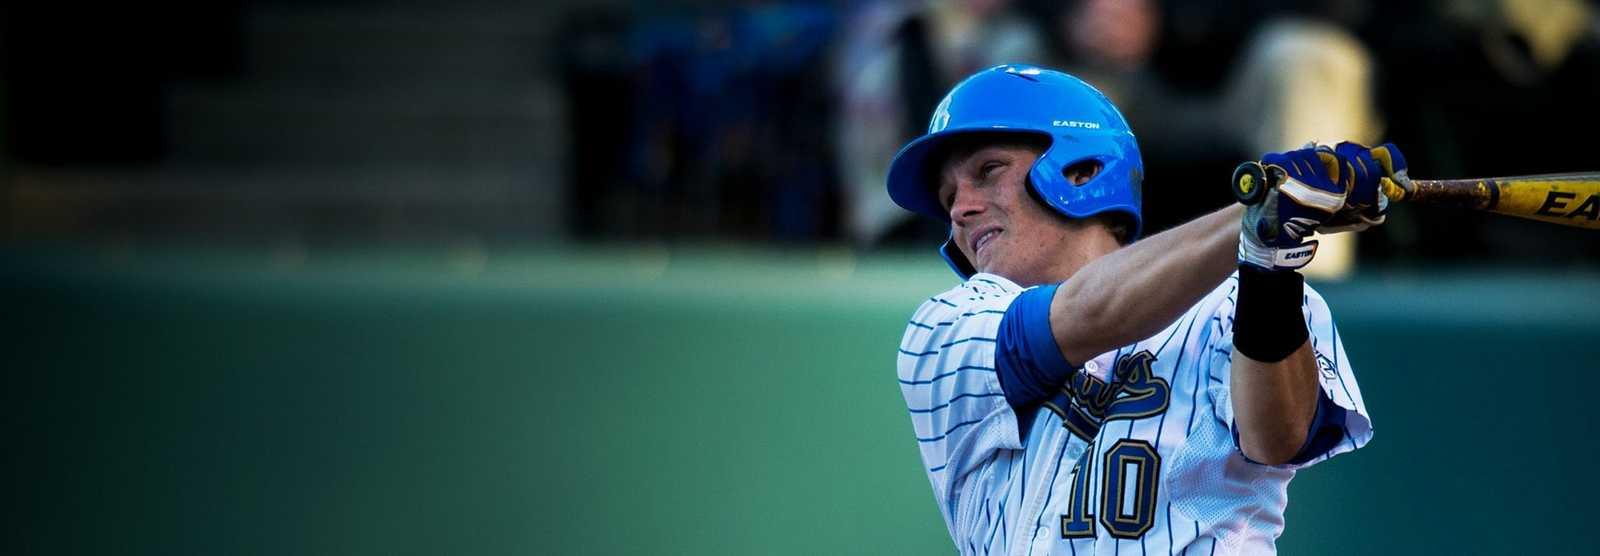 UCLA Baseball Batting Helmet